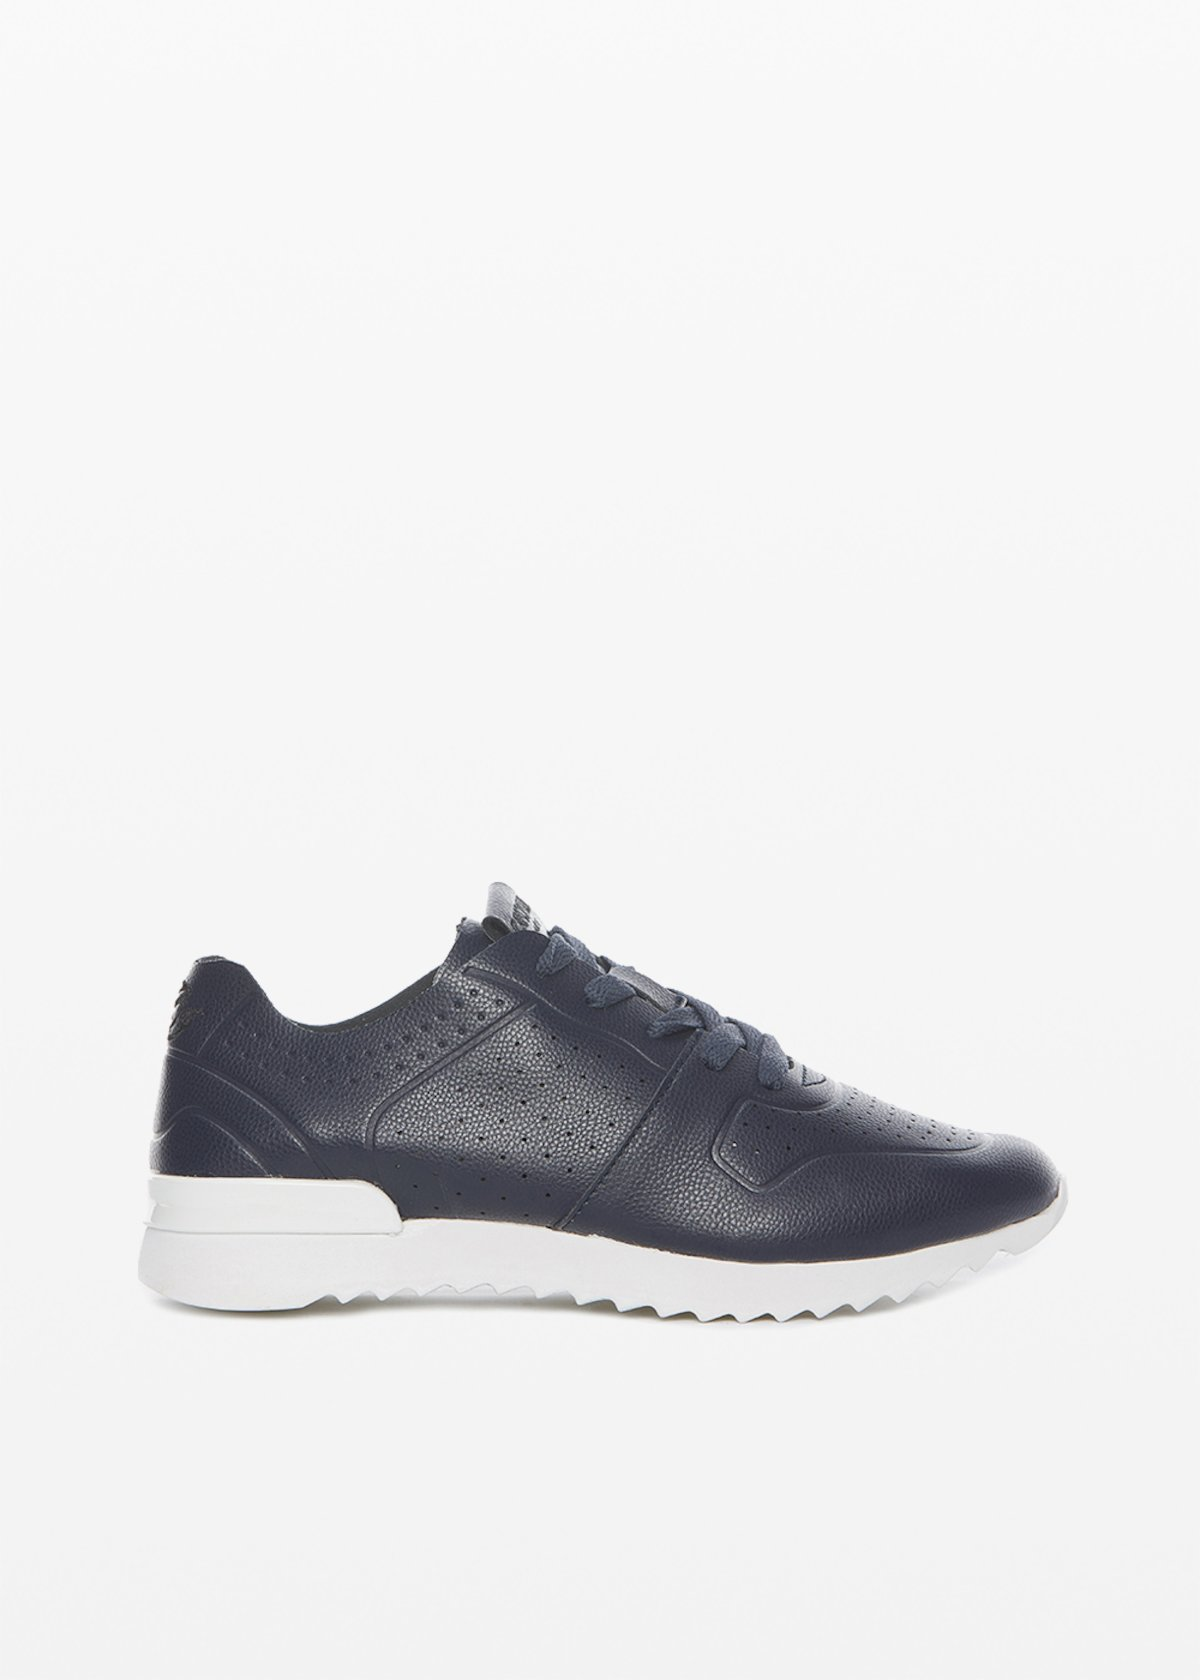 Sylvie ultralight sneakers perforation detail - Medium Blue - Woman - Category image